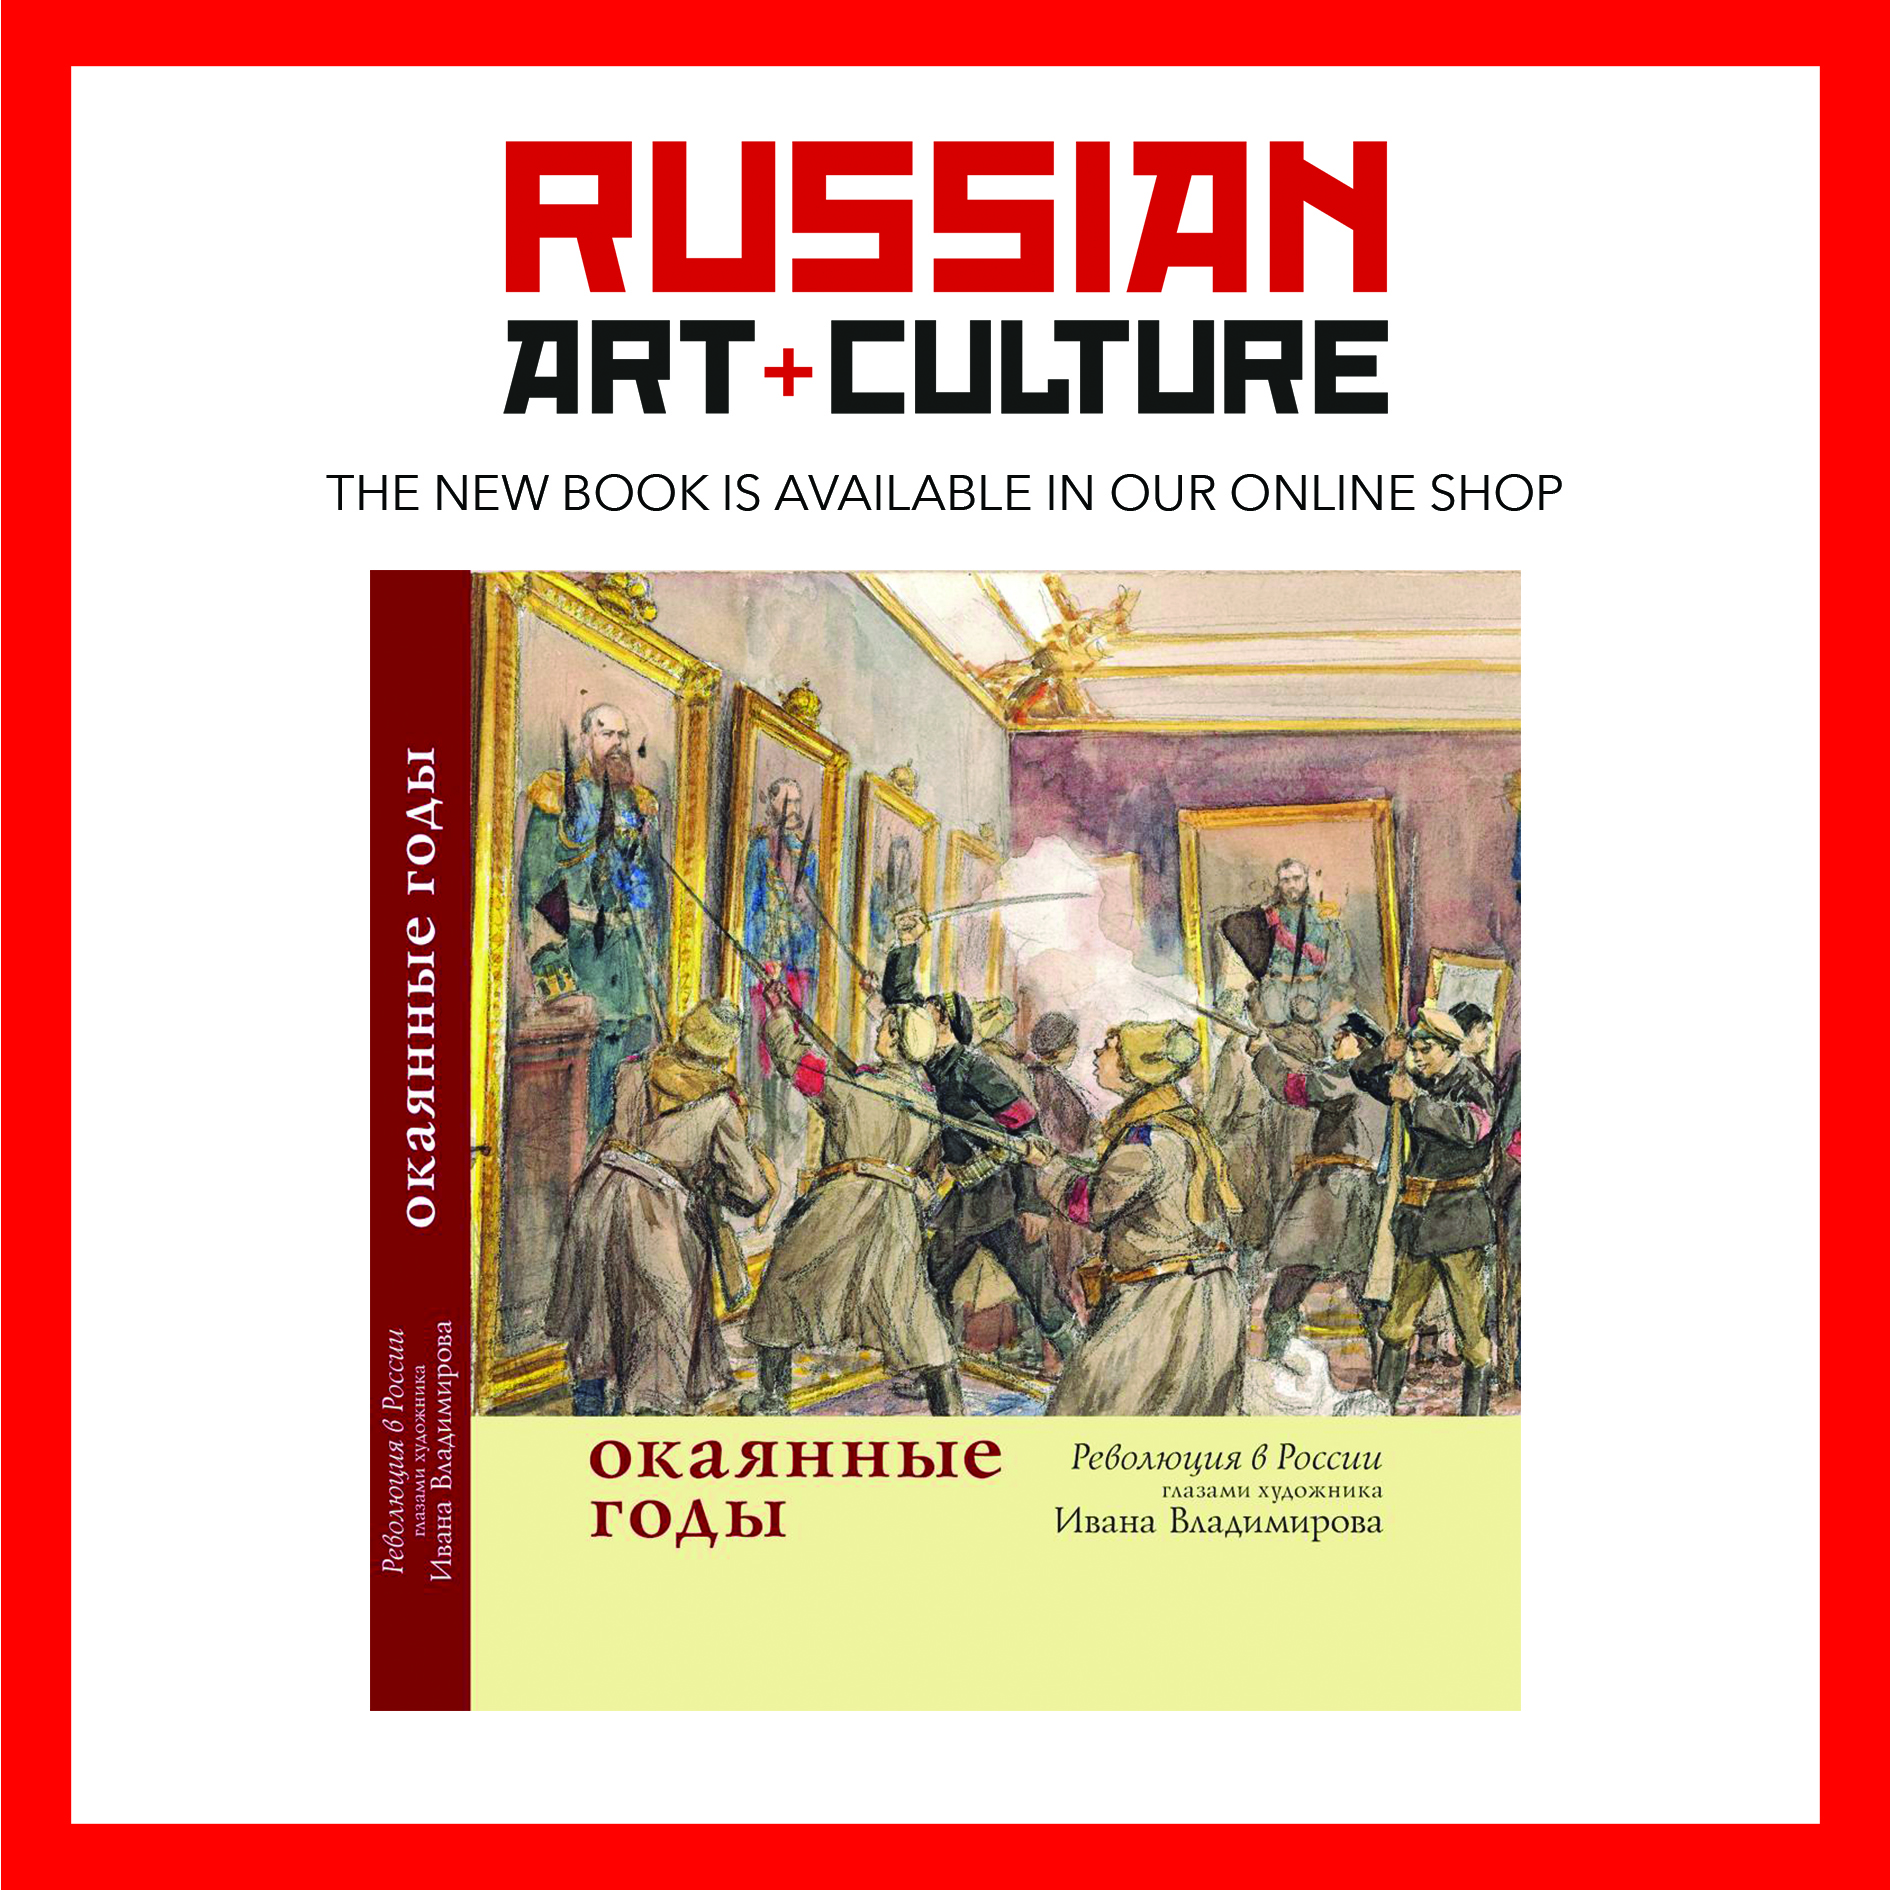 The Cursed Years : Revolution in Russia through the eyes of the artist Ivan Vladimirov